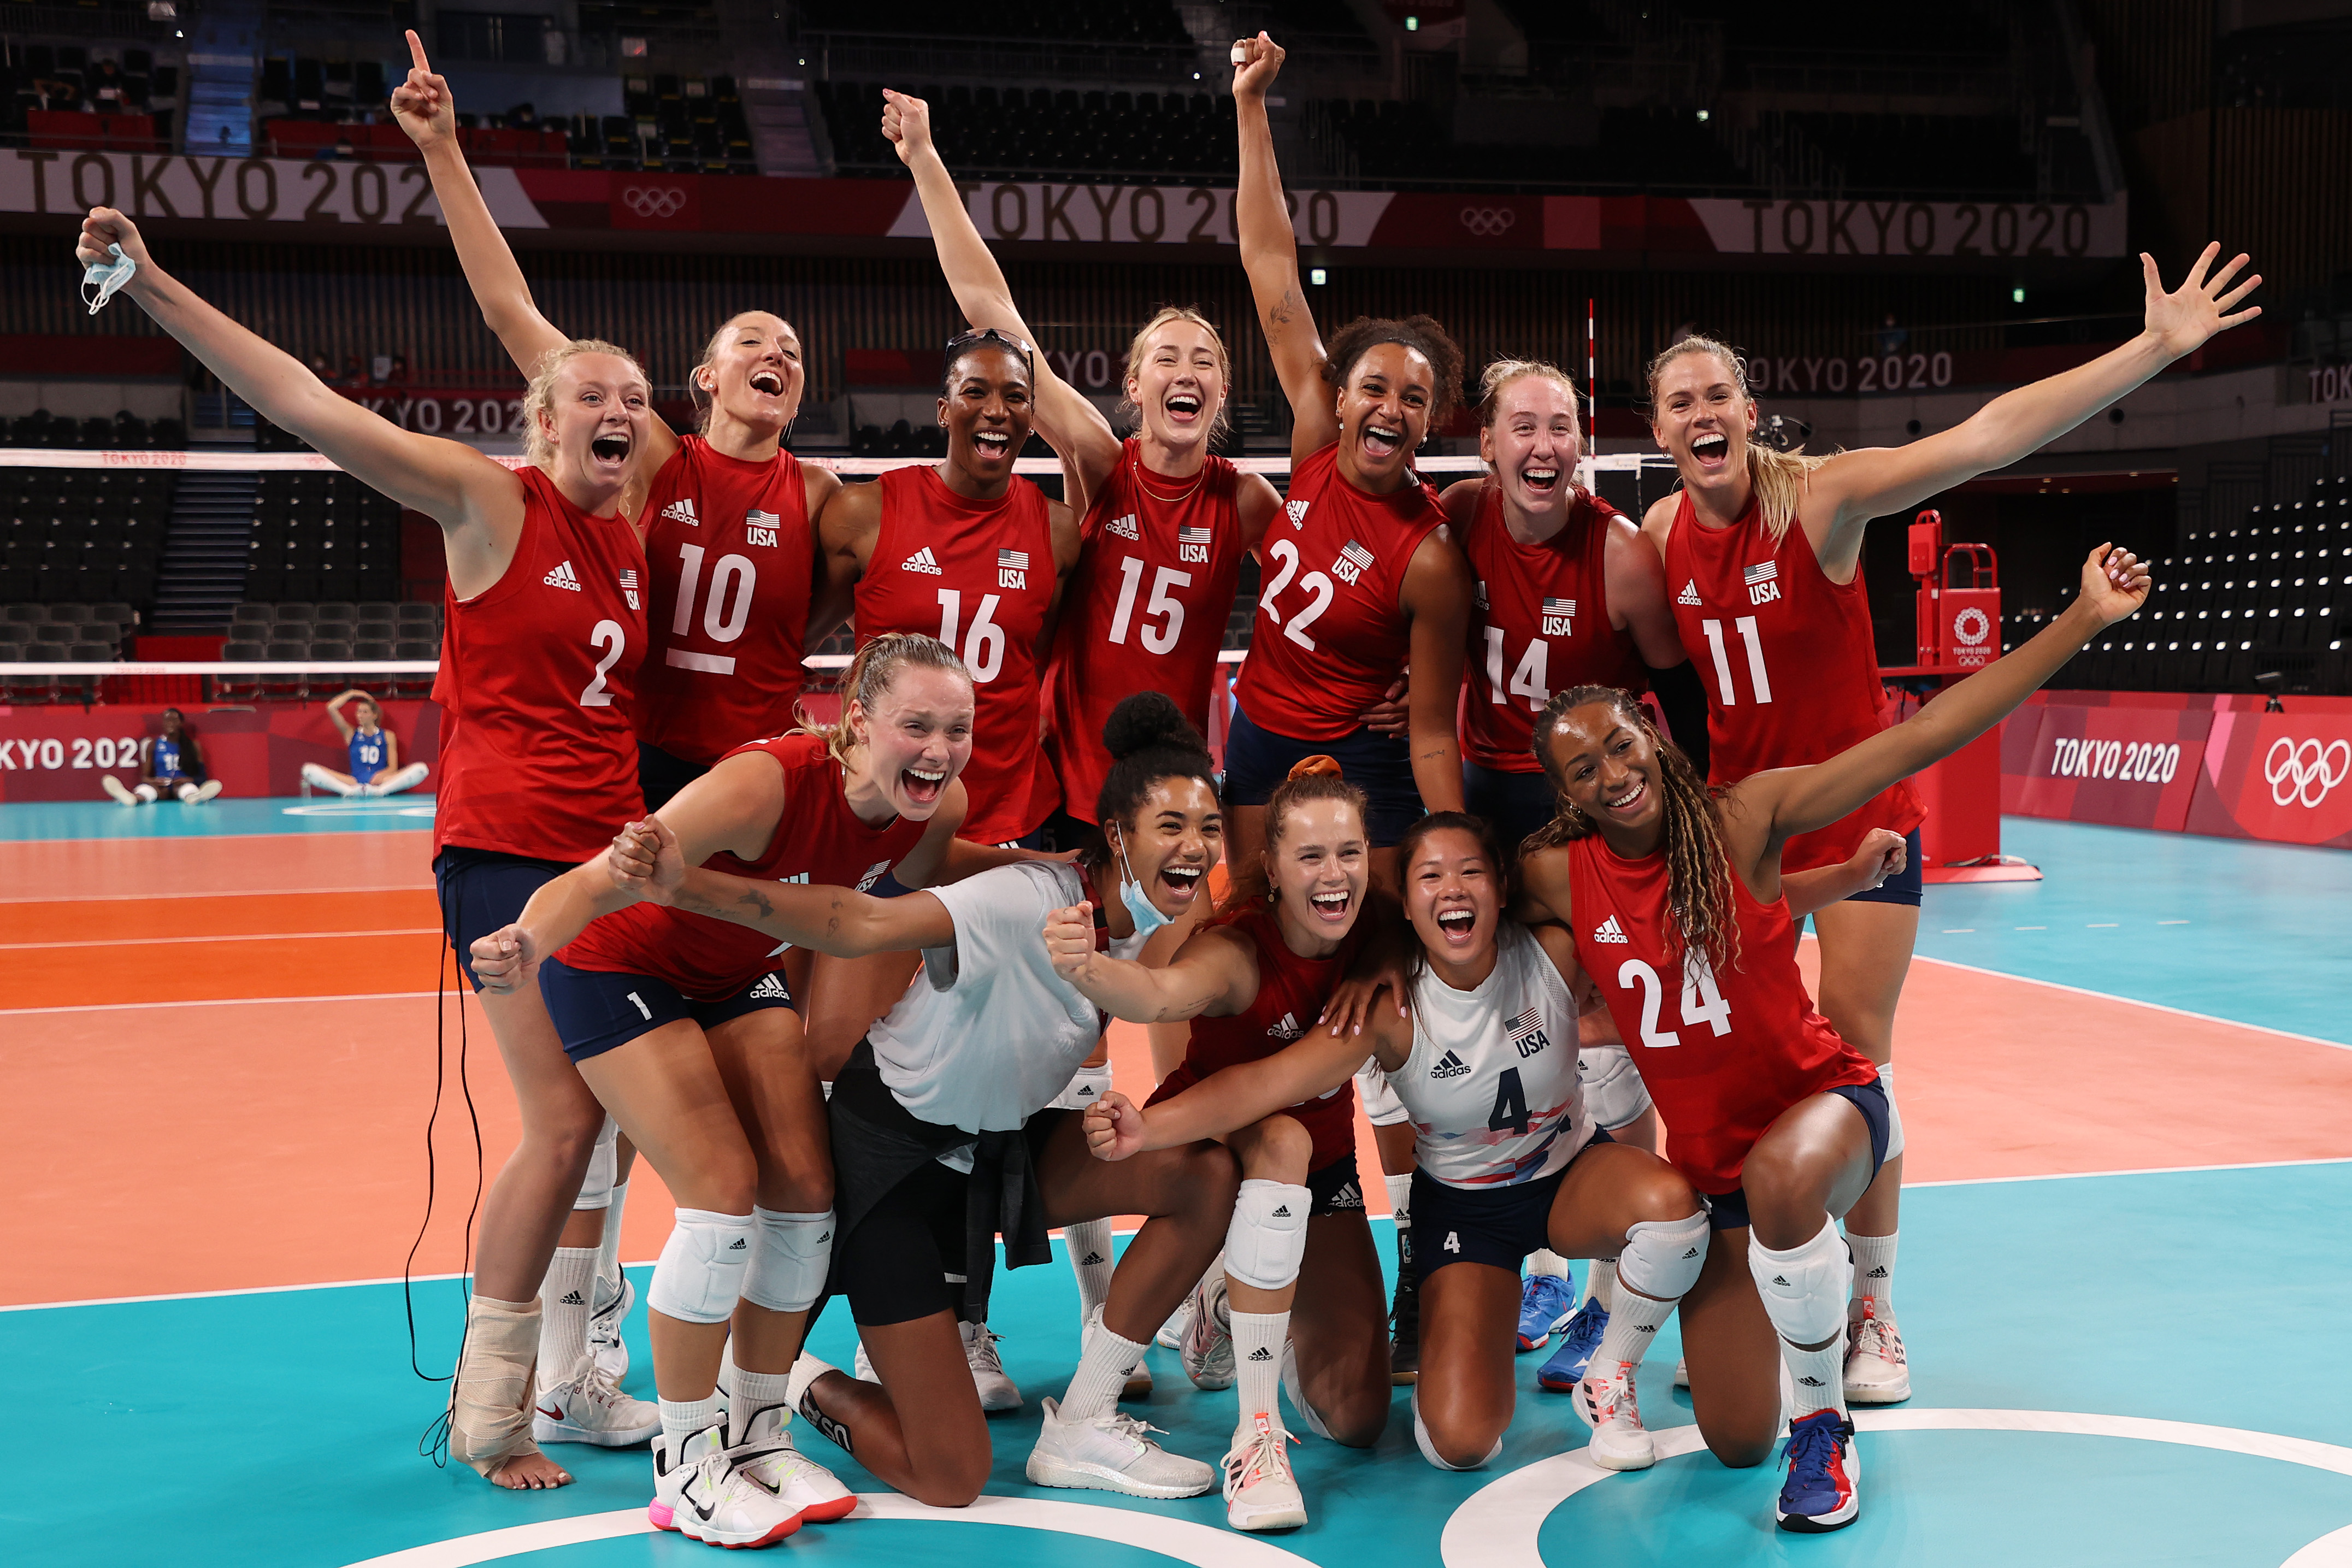 Team United States poses for a photo after defeating Team Italy during the Women's Preliminary - Pool B volleyball on day ten of the Tokyo 2020 Olympic Games at Ariake Arena on August 02, 2021 in Tokyo, Japan.